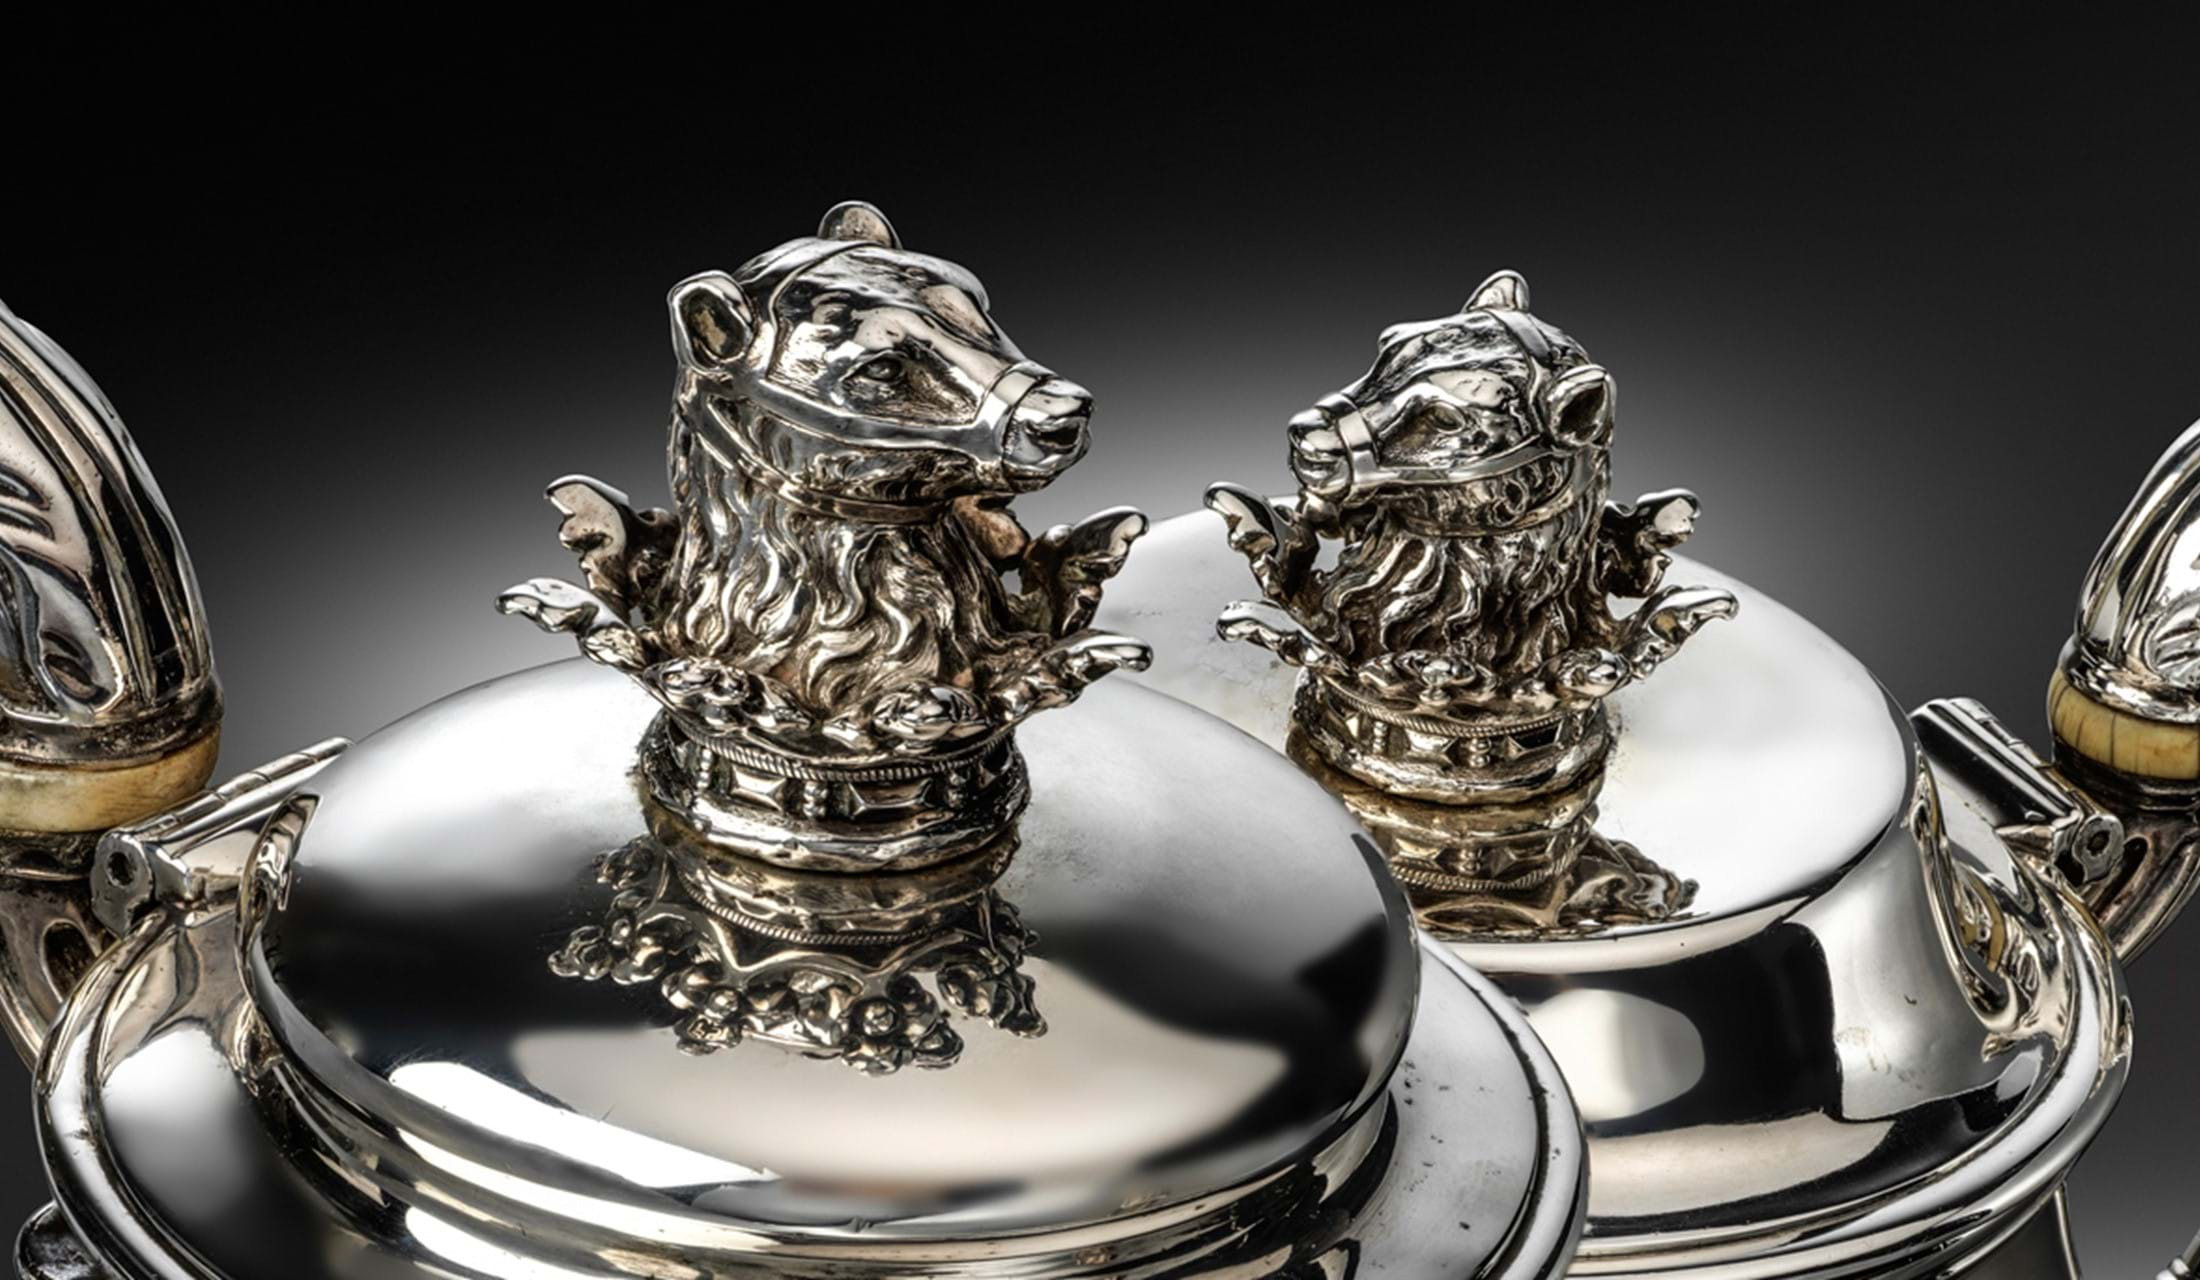 Silver & Objects of Vertu (1) Image